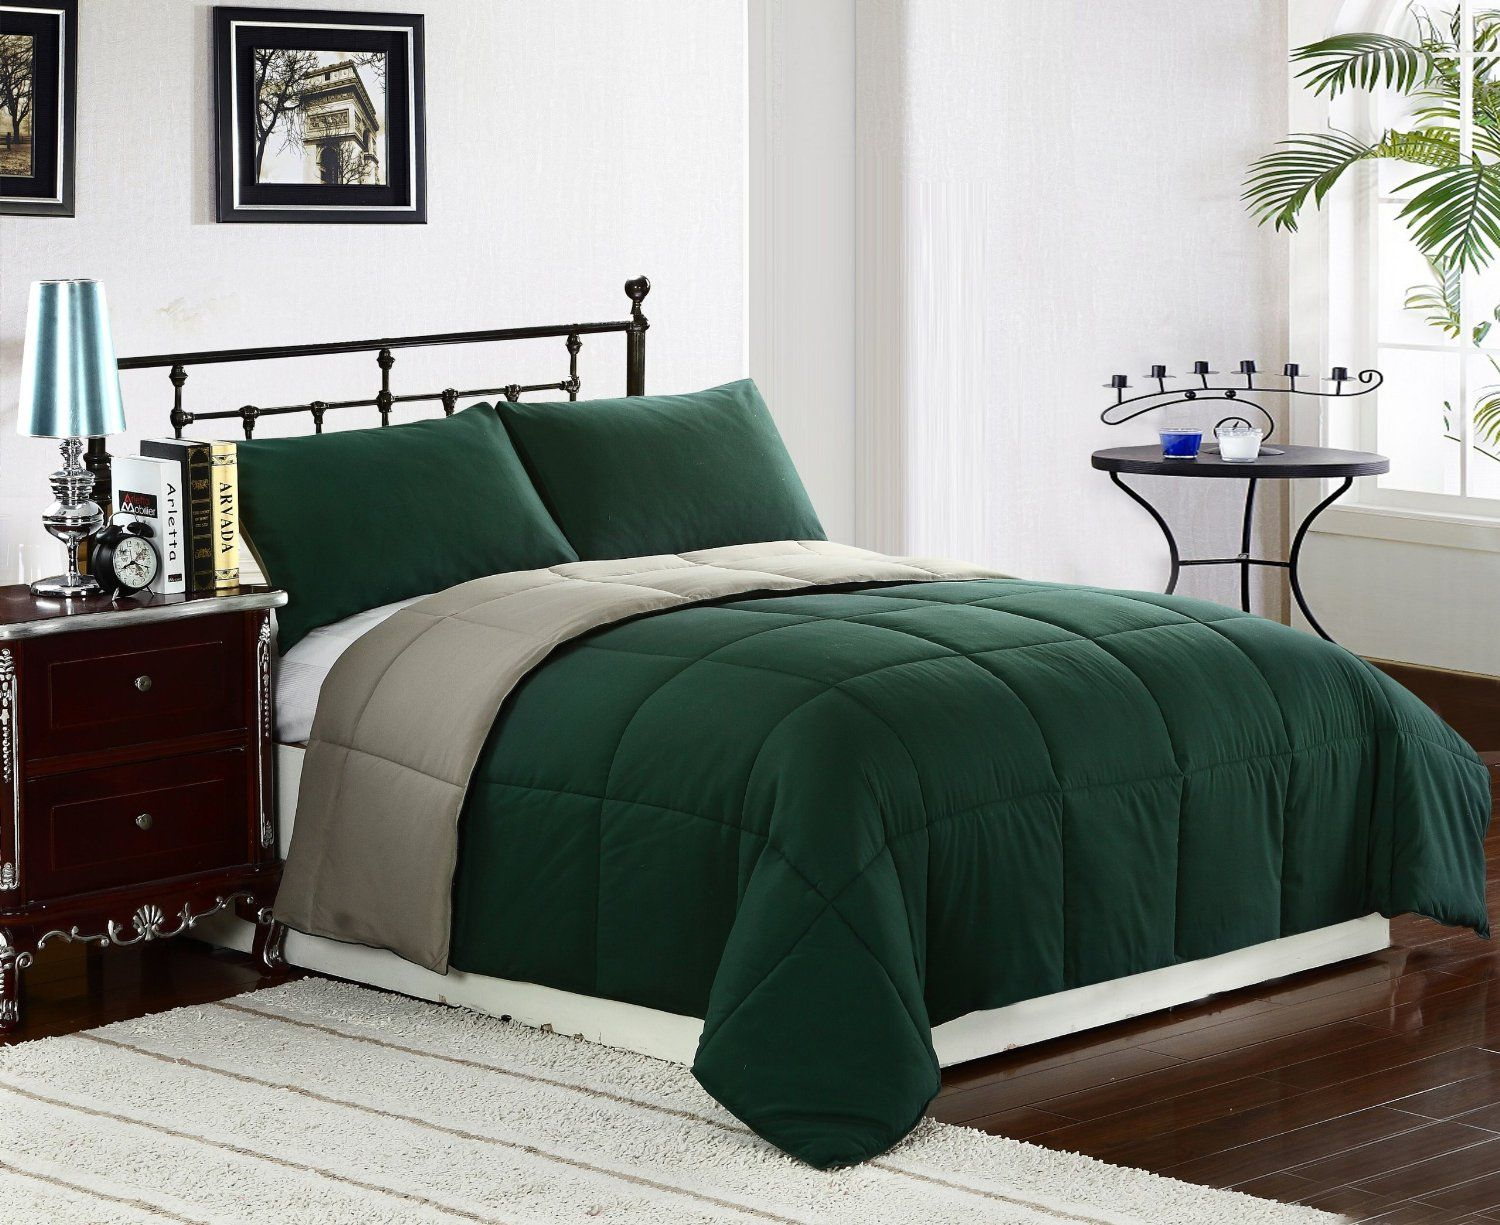 Sage Olive And Hunter Green Bedroom Decorating Ideas Green